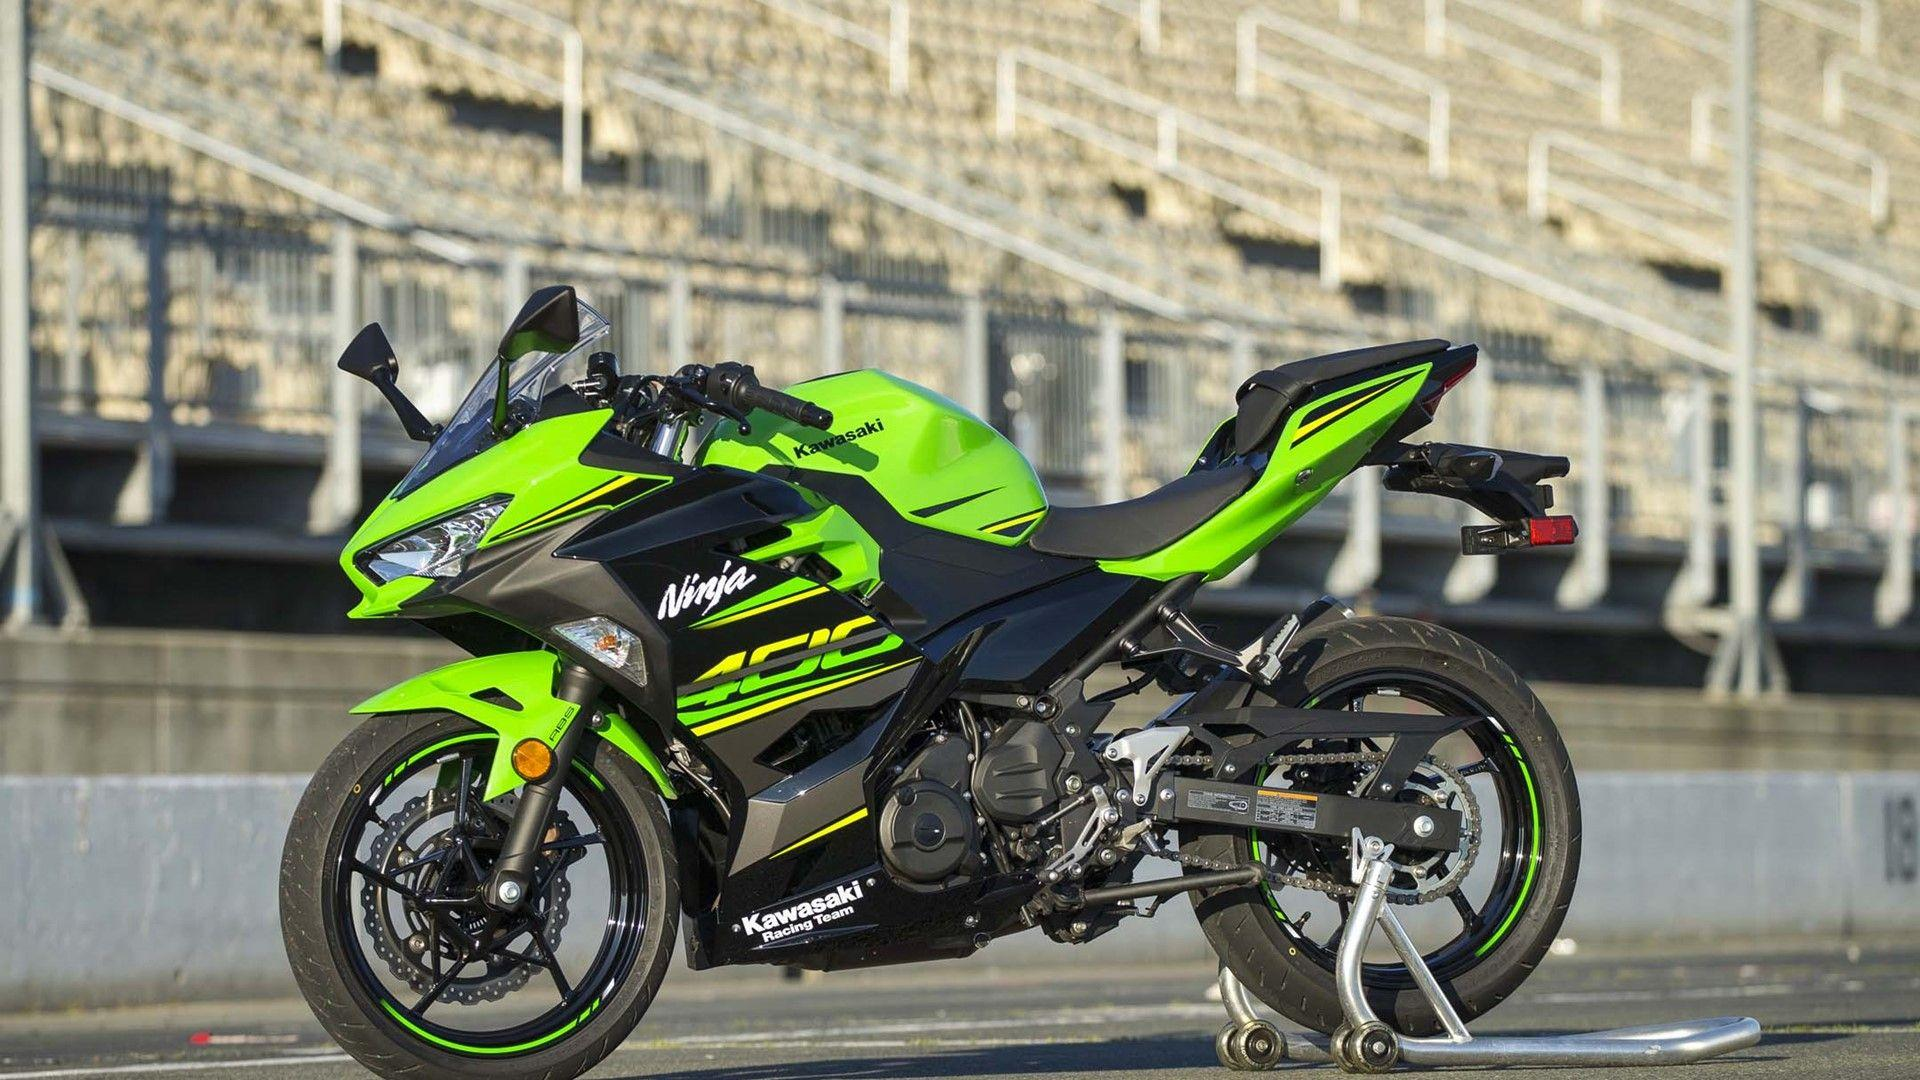 kawasaki ninja 400 wallpapers wallpaper cave. Black Bedroom Furniture Sets. Home Design Ideas